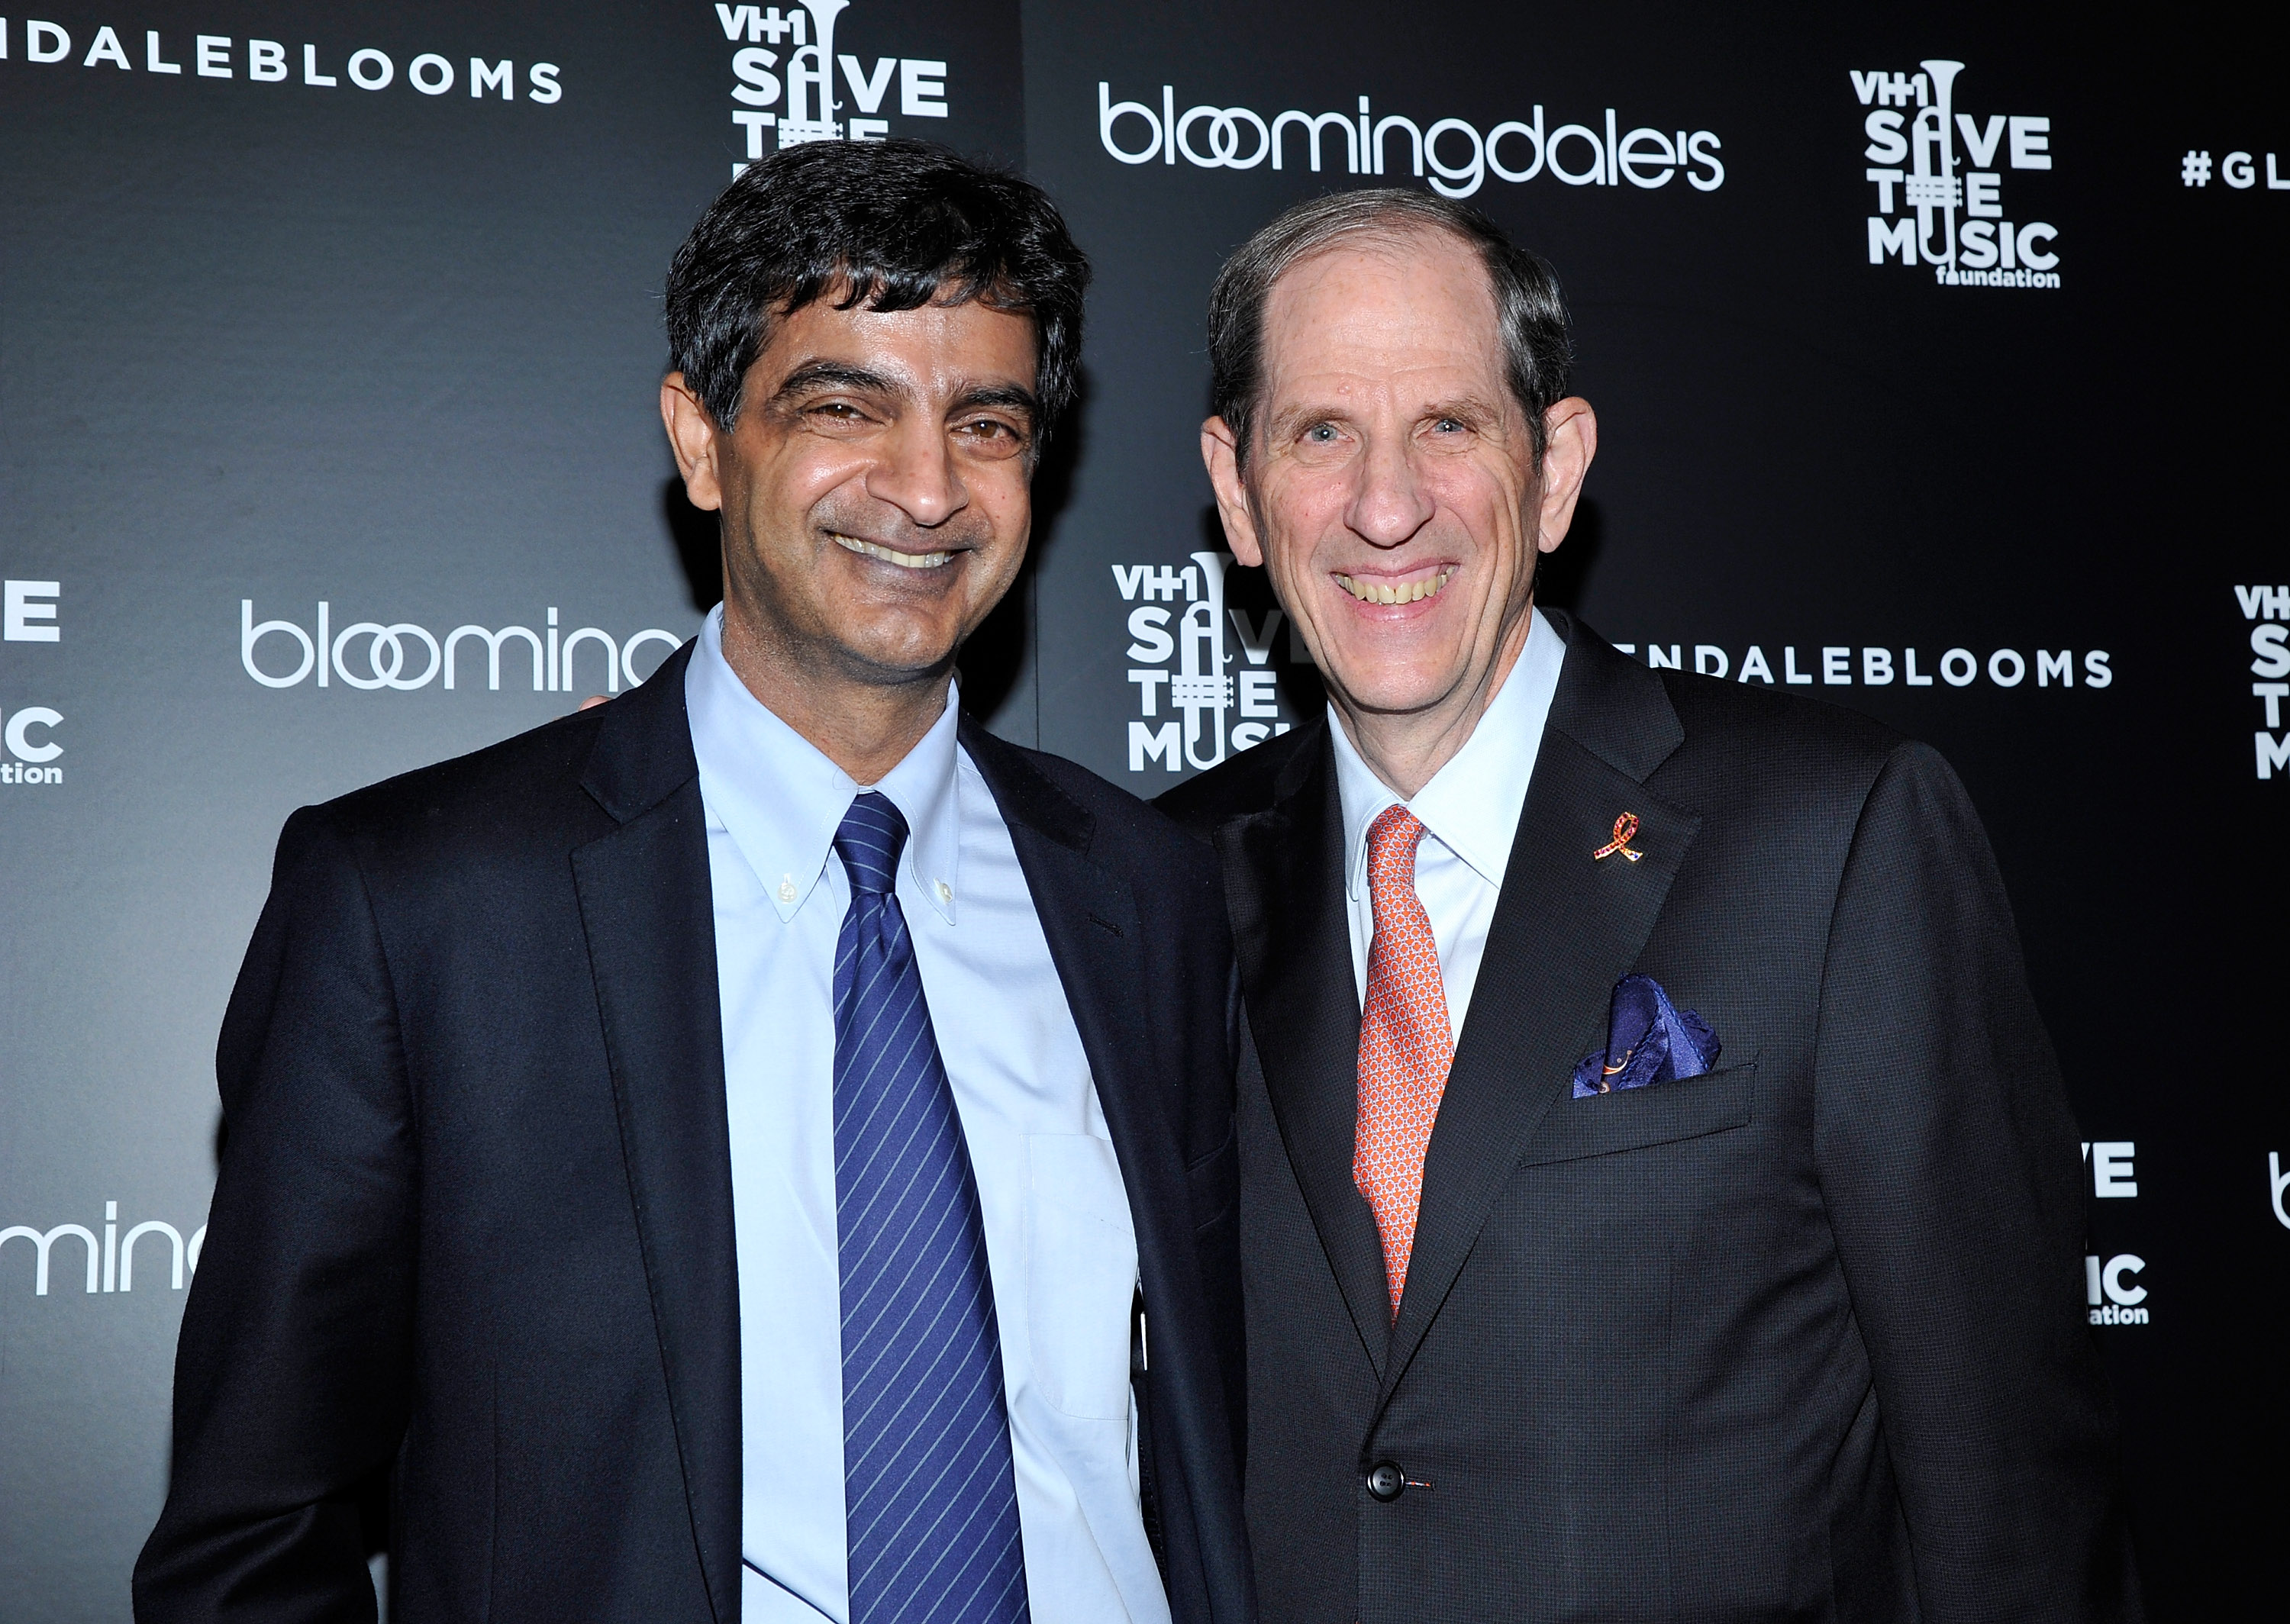 Sandeep Mathrani and Michael Gould, Bloomingdale's chairman and CEO attend Bloomingdale's Glendale opening gala celebration with VH1 Save The Music Foundation at Bloomingdale's Glendale on November 6, 2013 in Glendale, California.